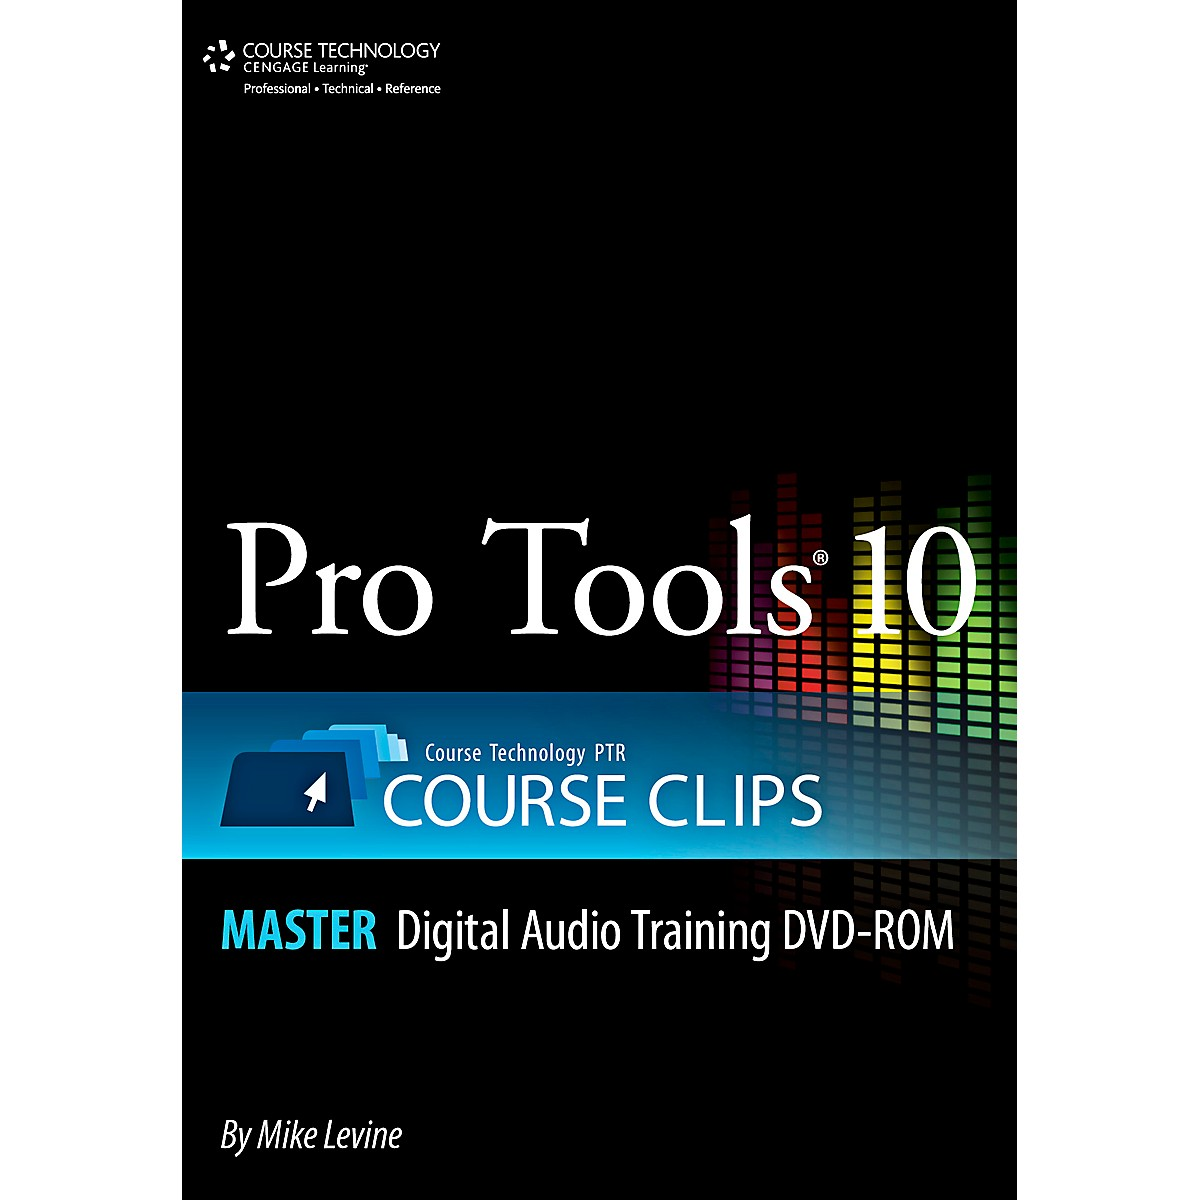 Course Technology PTR Pro Tools 10 Course Clips Master DVD